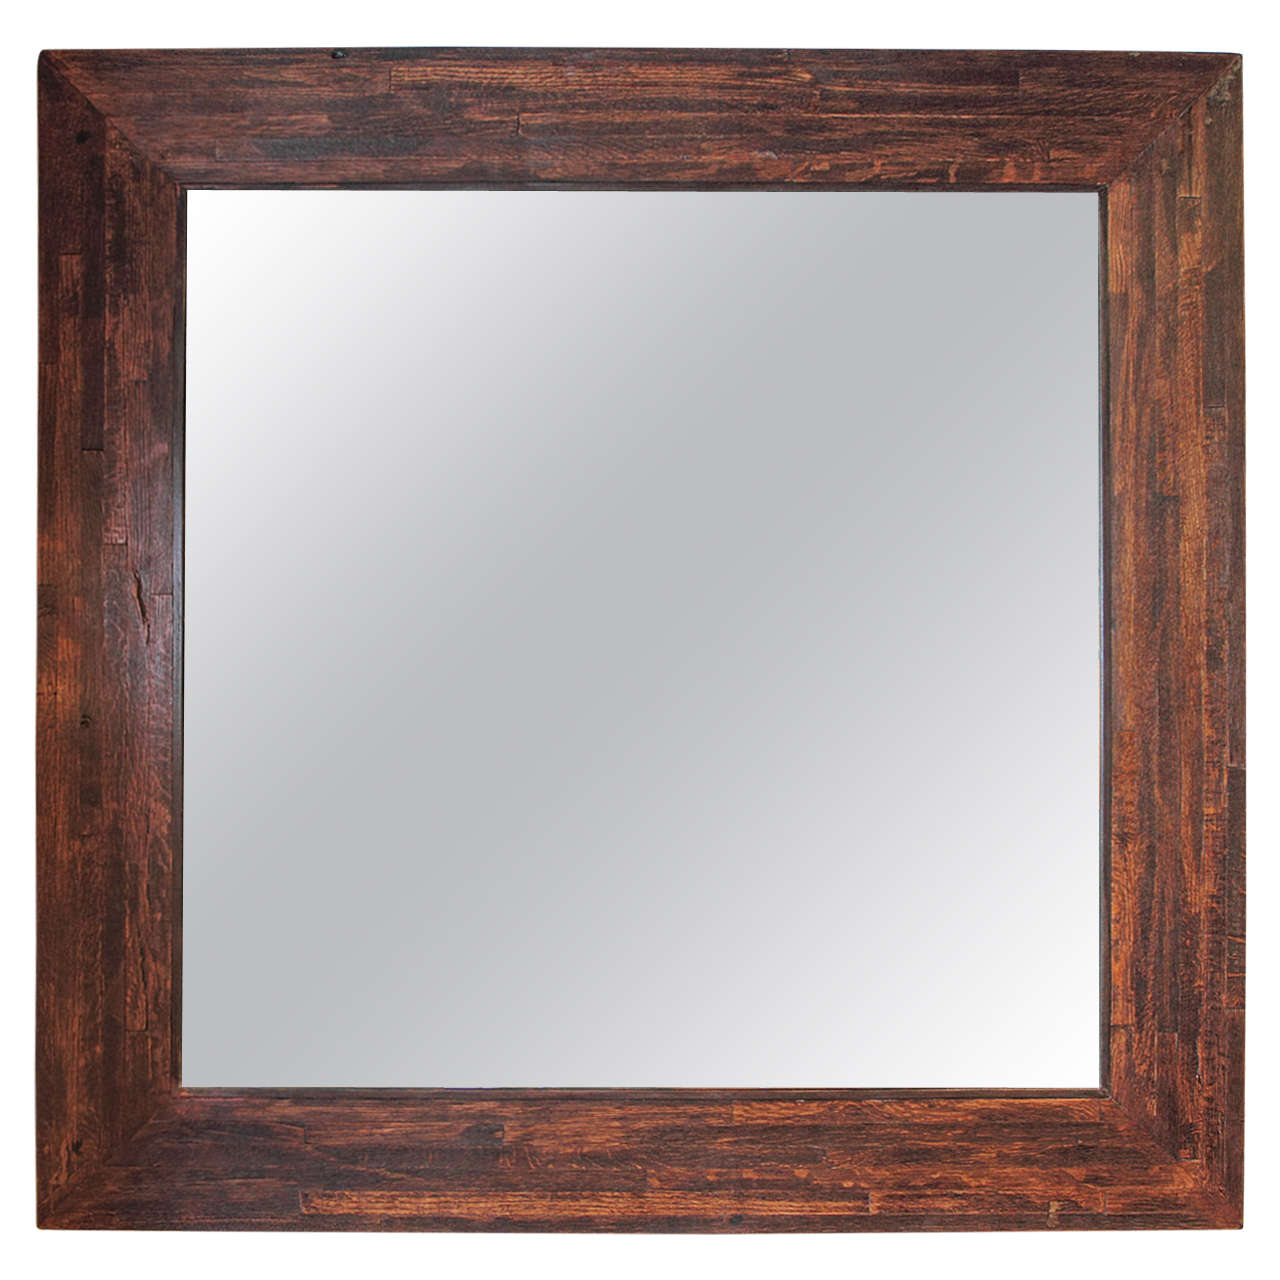 Transitional large maple wood framed mirrors at 1stdibs for Large wall mirror wood frame